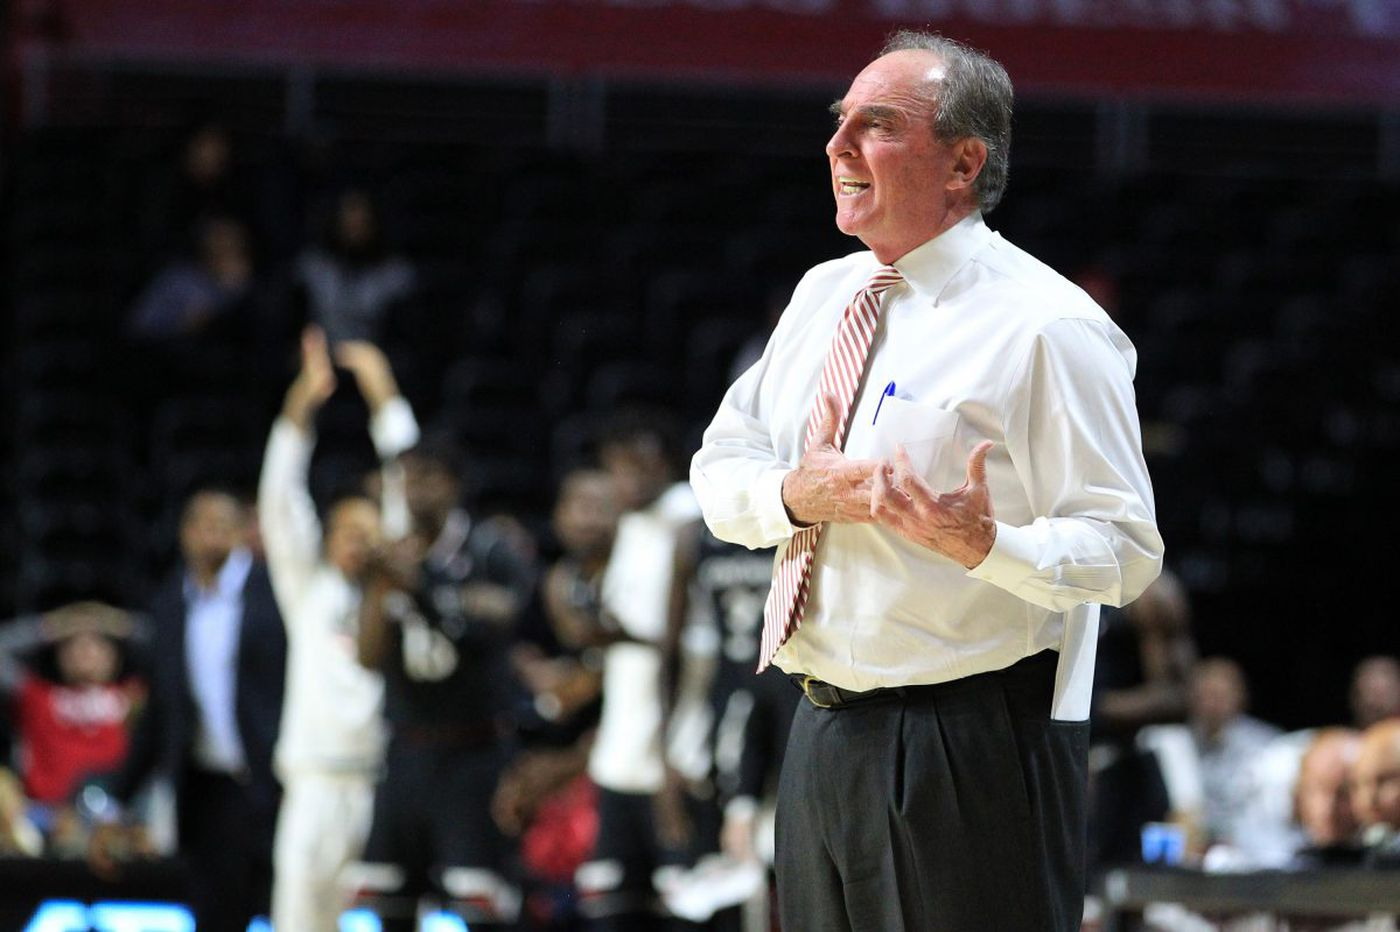 Temple flattened by surging Houston, hurting NCAA tournament chances